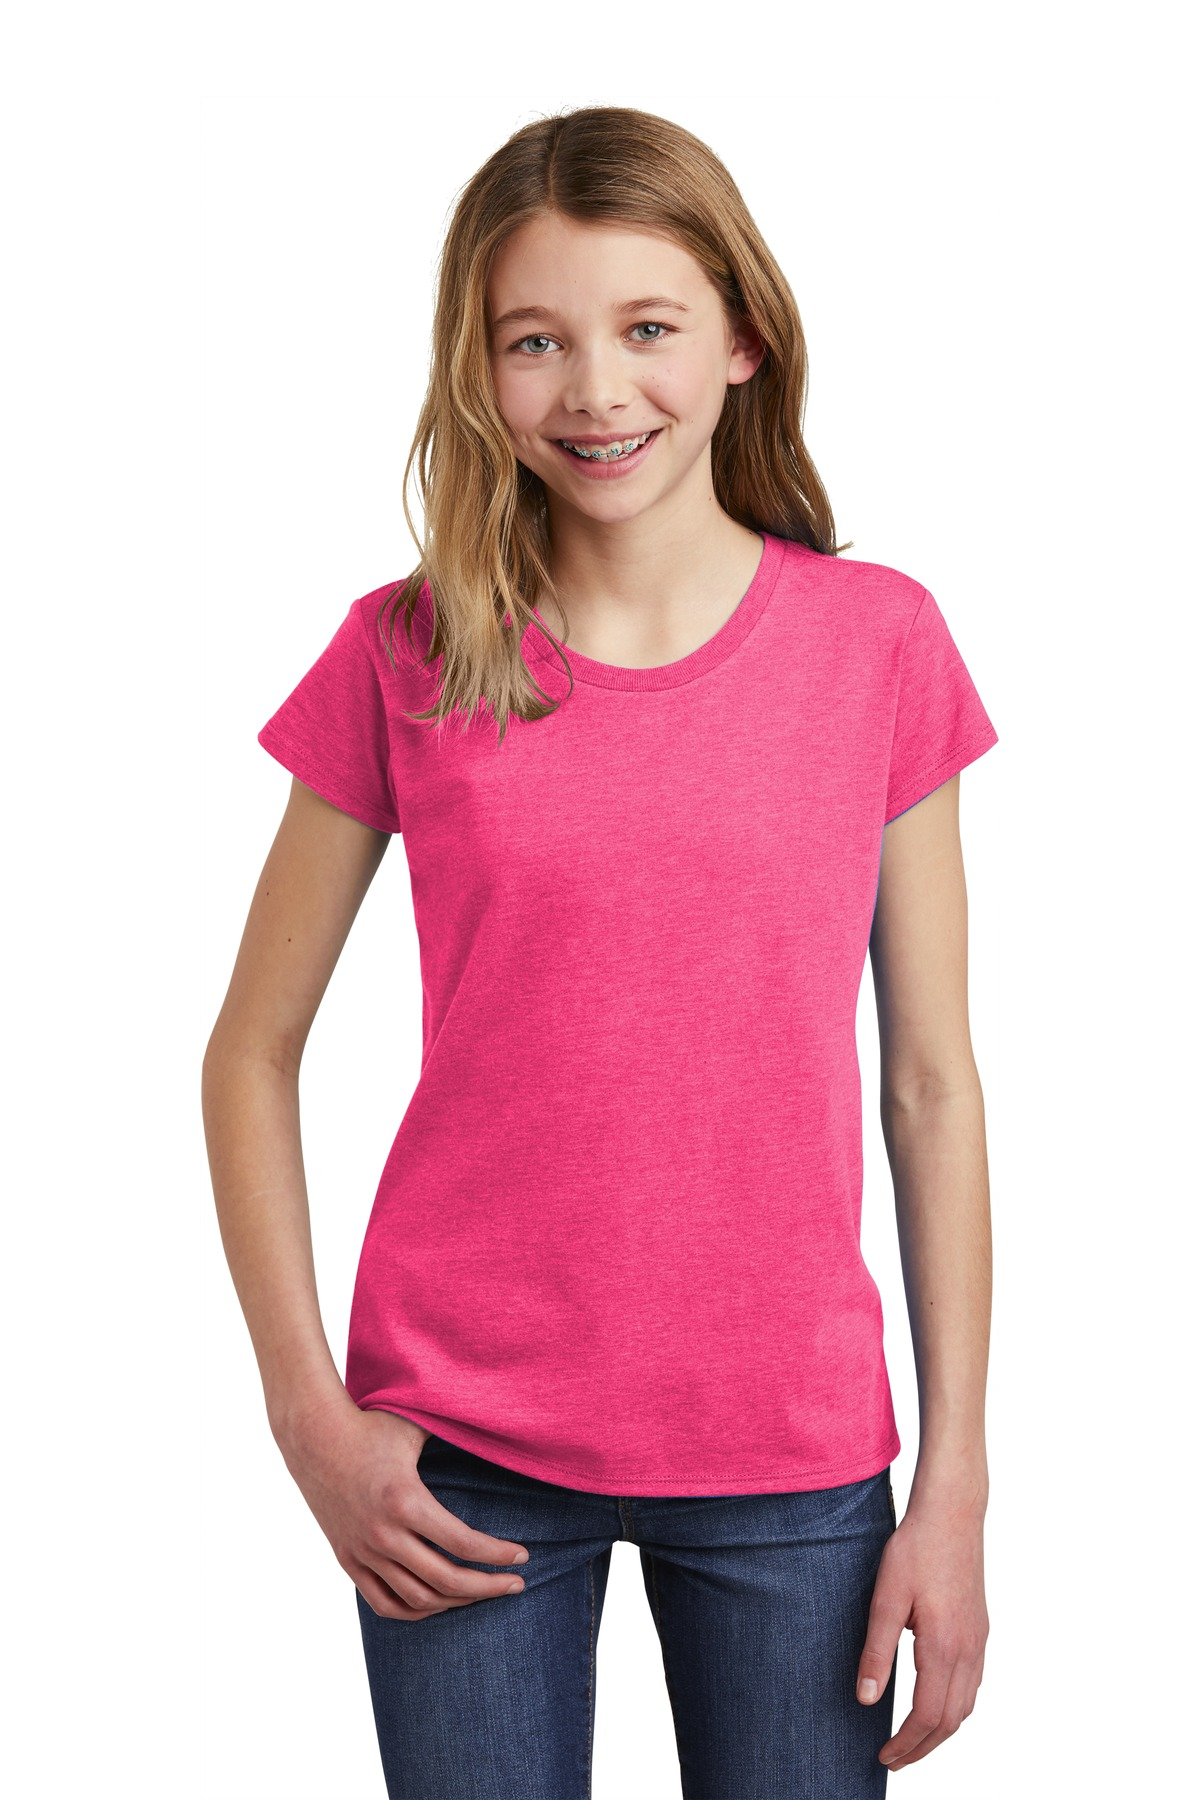 District  ®  Girls Very Important Tee  ®  .DT6001YG - Fuchsia Frost